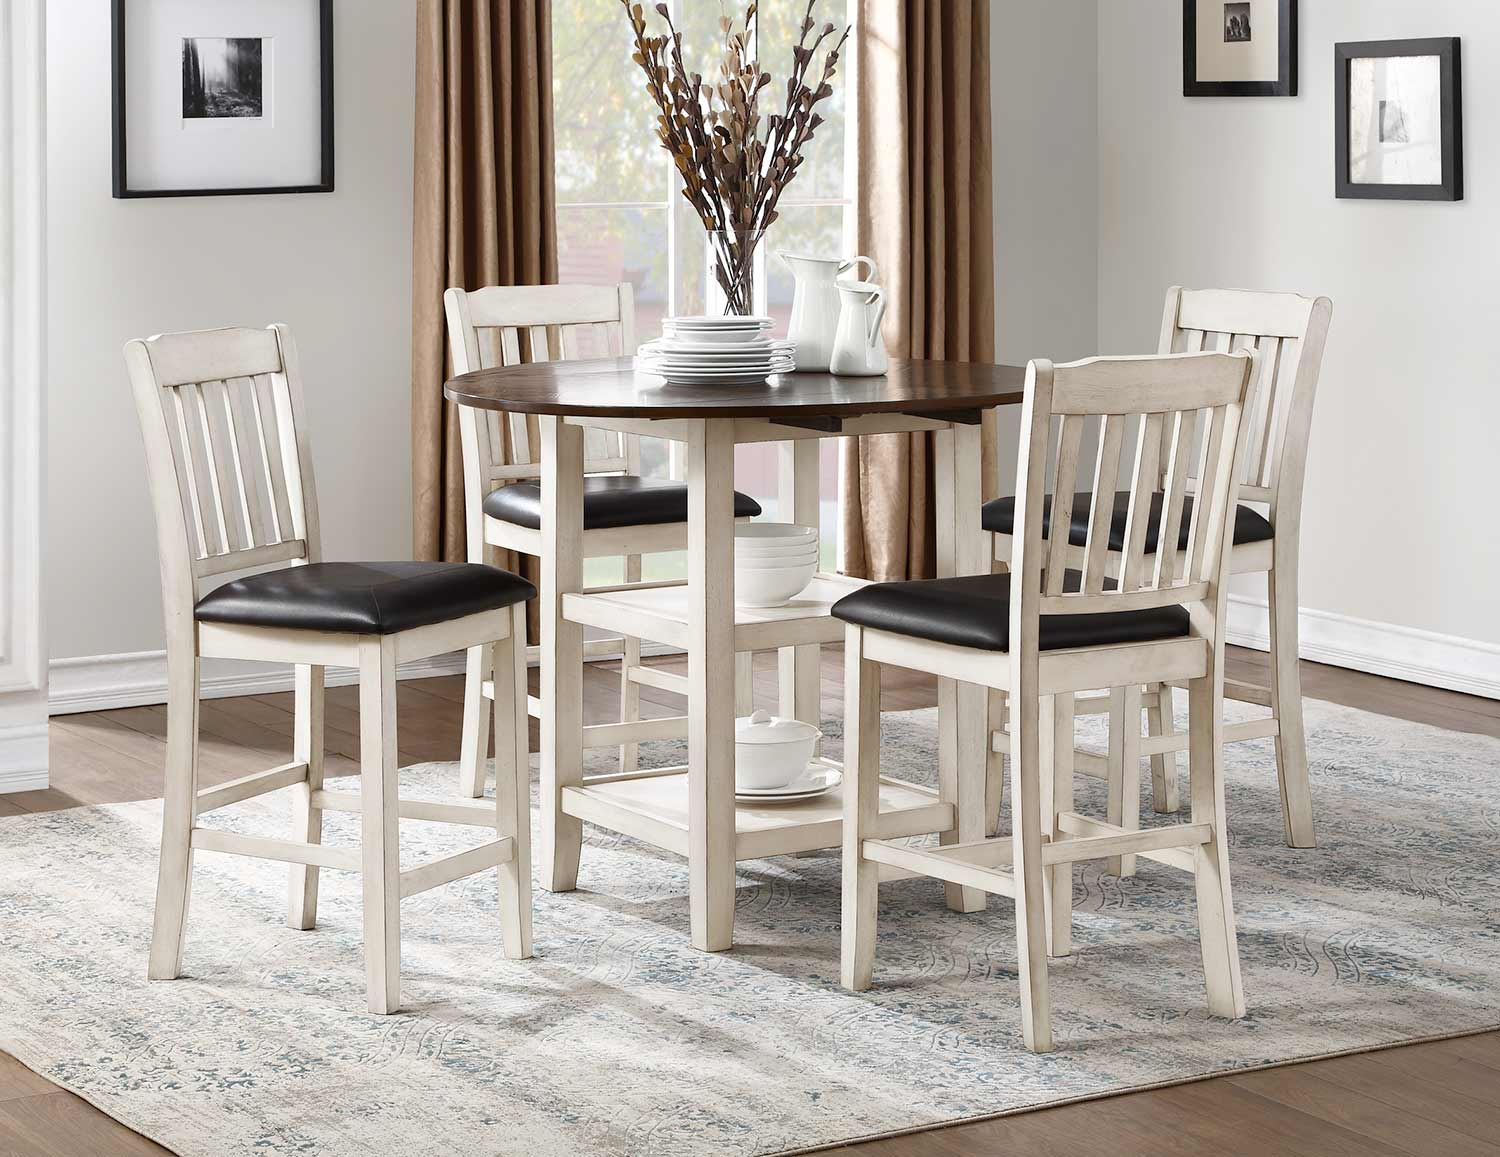 Homelegance Kiwi Counter Height Dining Set - White Wash - Dark Cherry